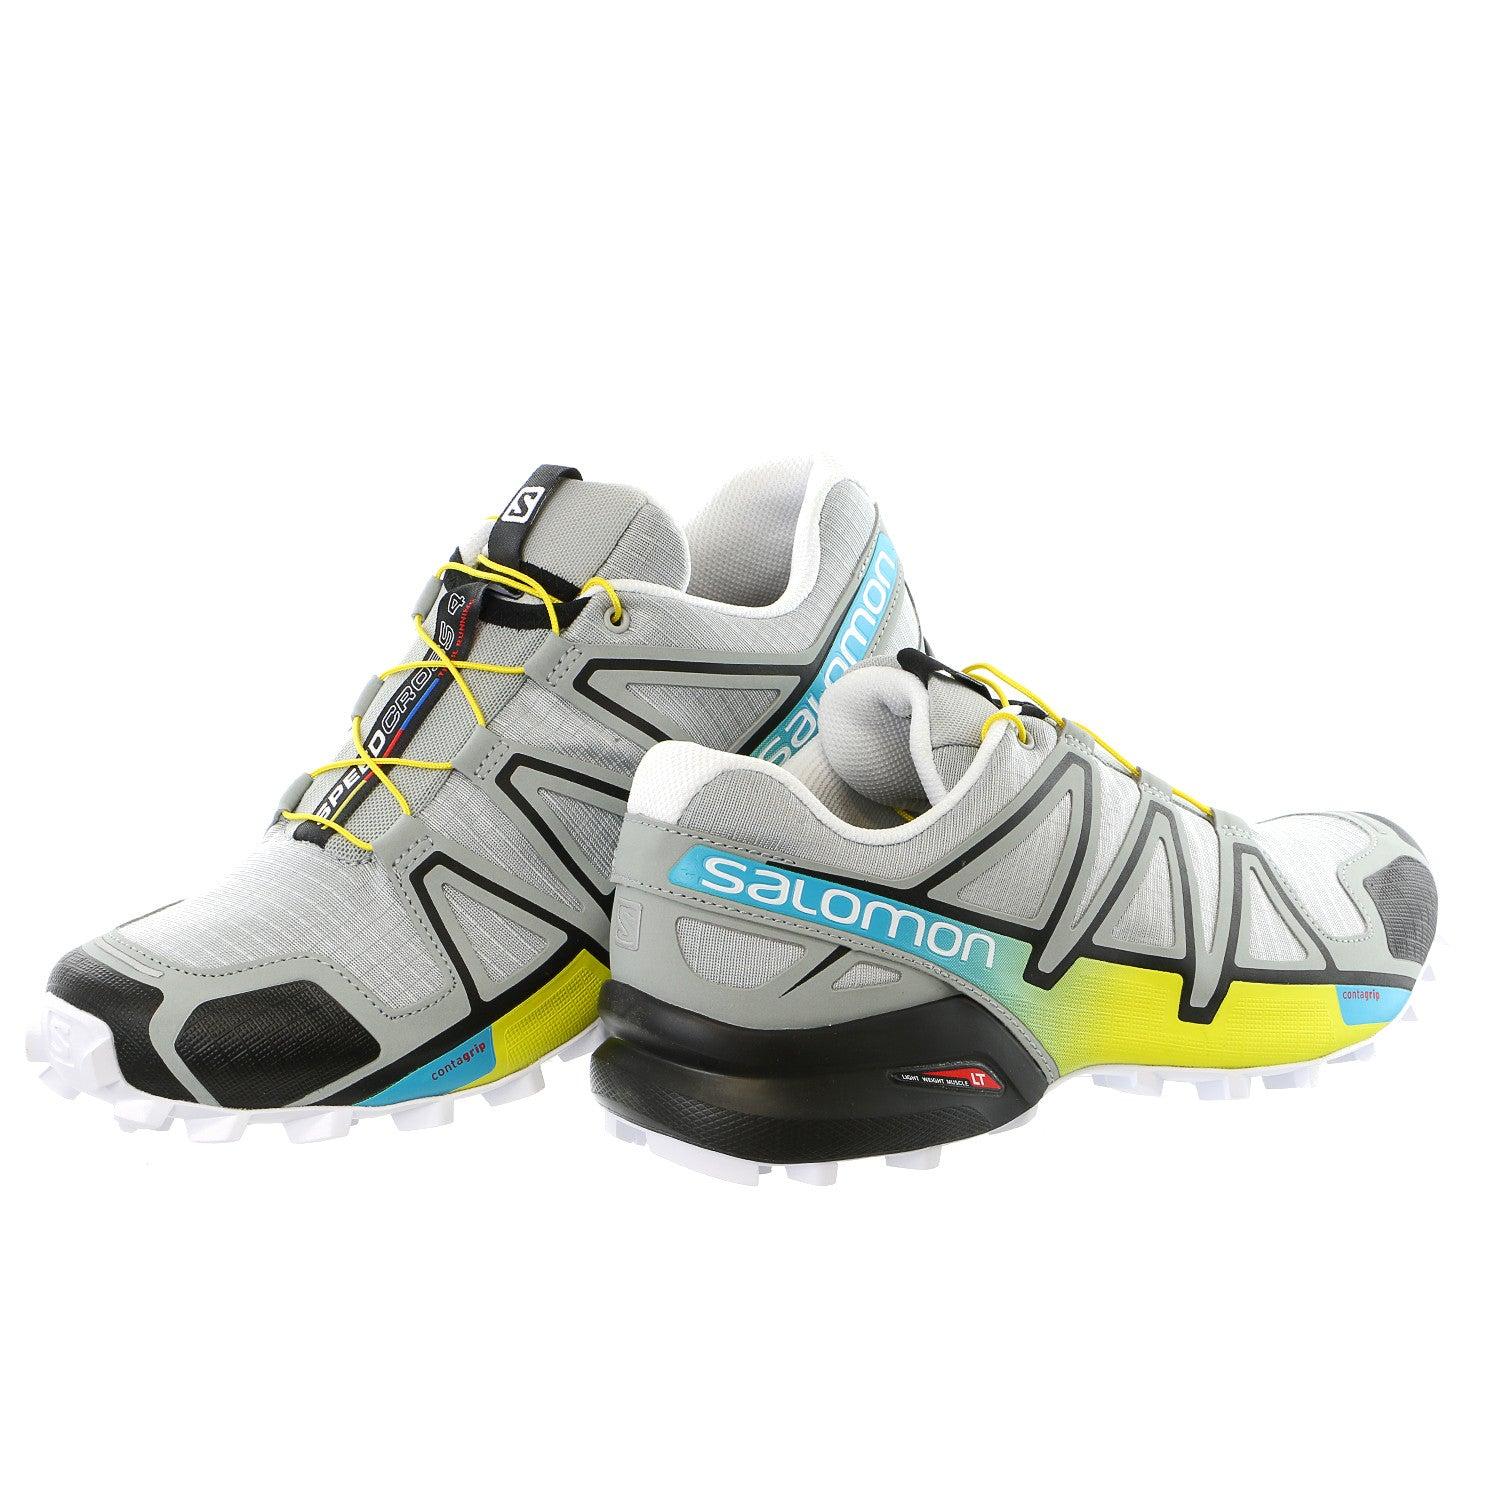 Salomon Speedcross 4 Trail Running Shoes Men's Shoplifestyle